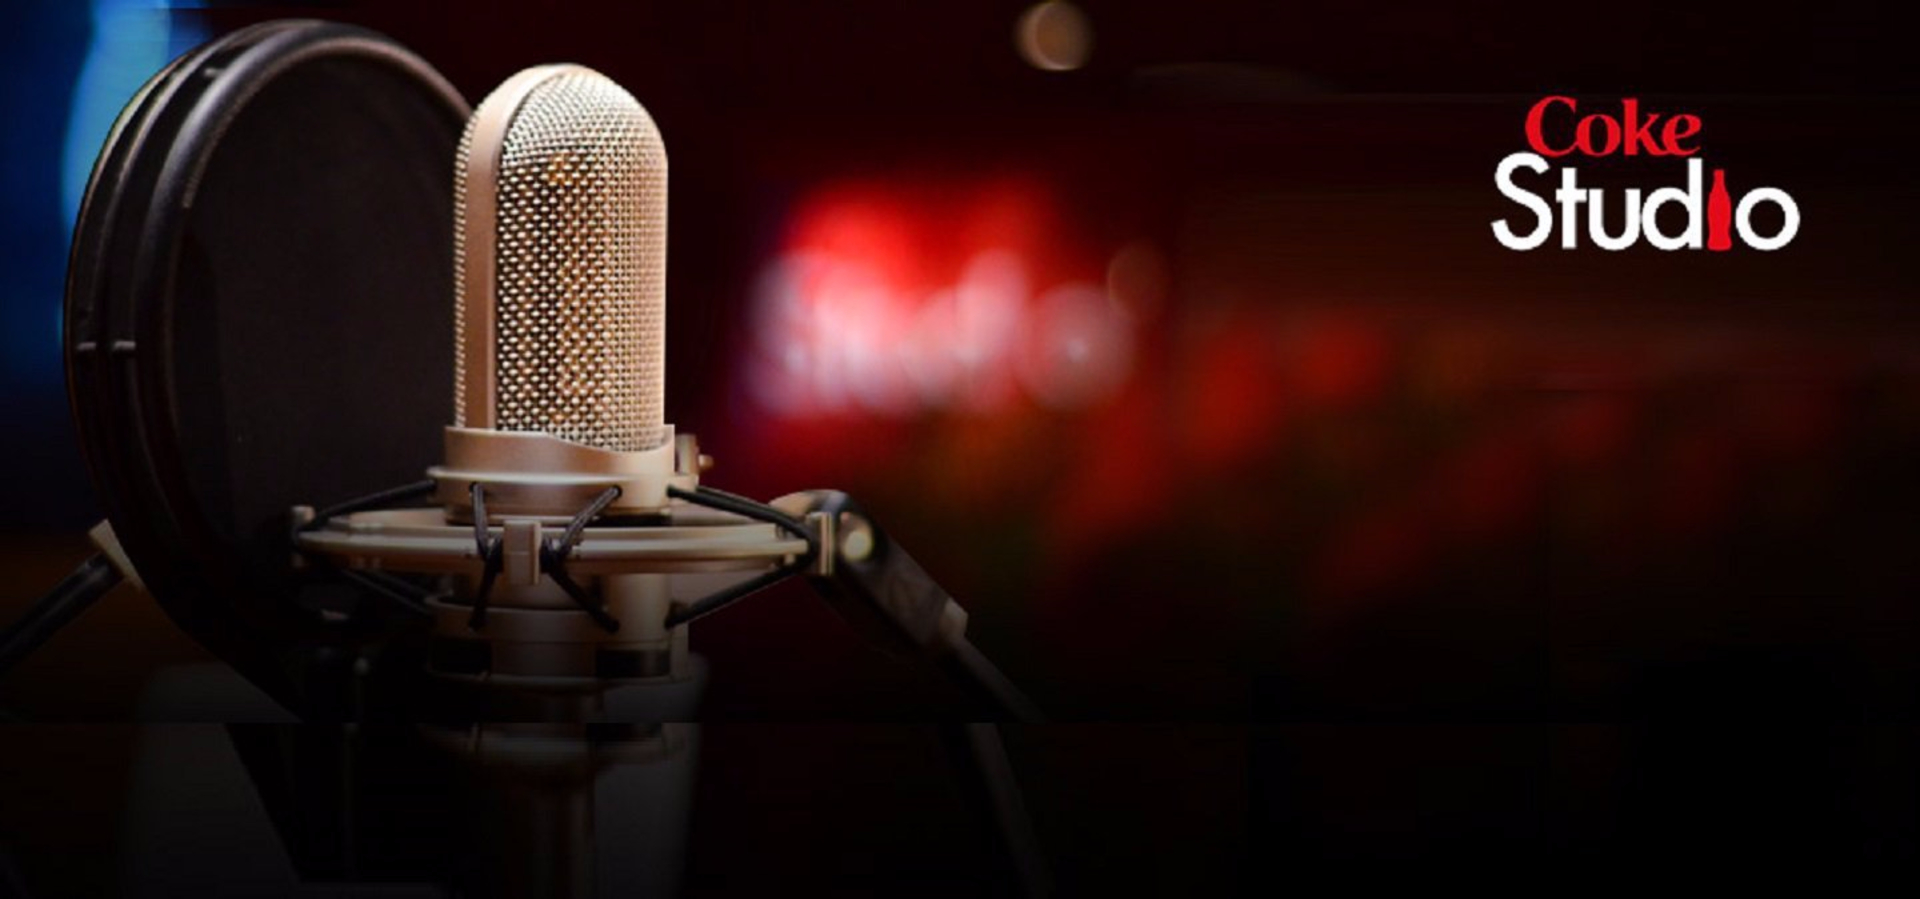 The Best Coke Studio Songs Of All Time ( 10th Season Anniversary ) image